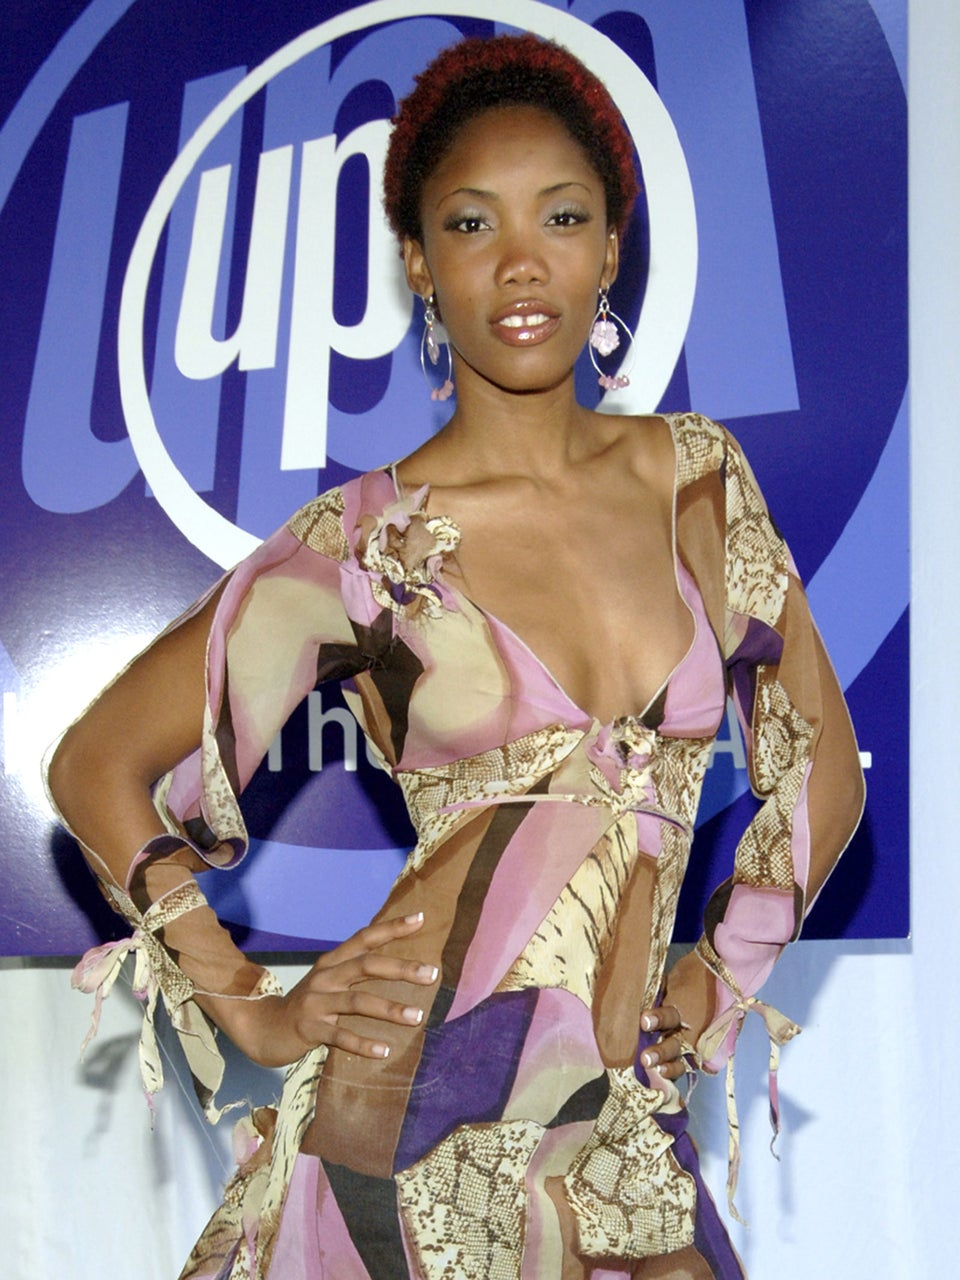 Former America's Next Top Model Contestant Brandy Rusher Injured in Texas Shooting